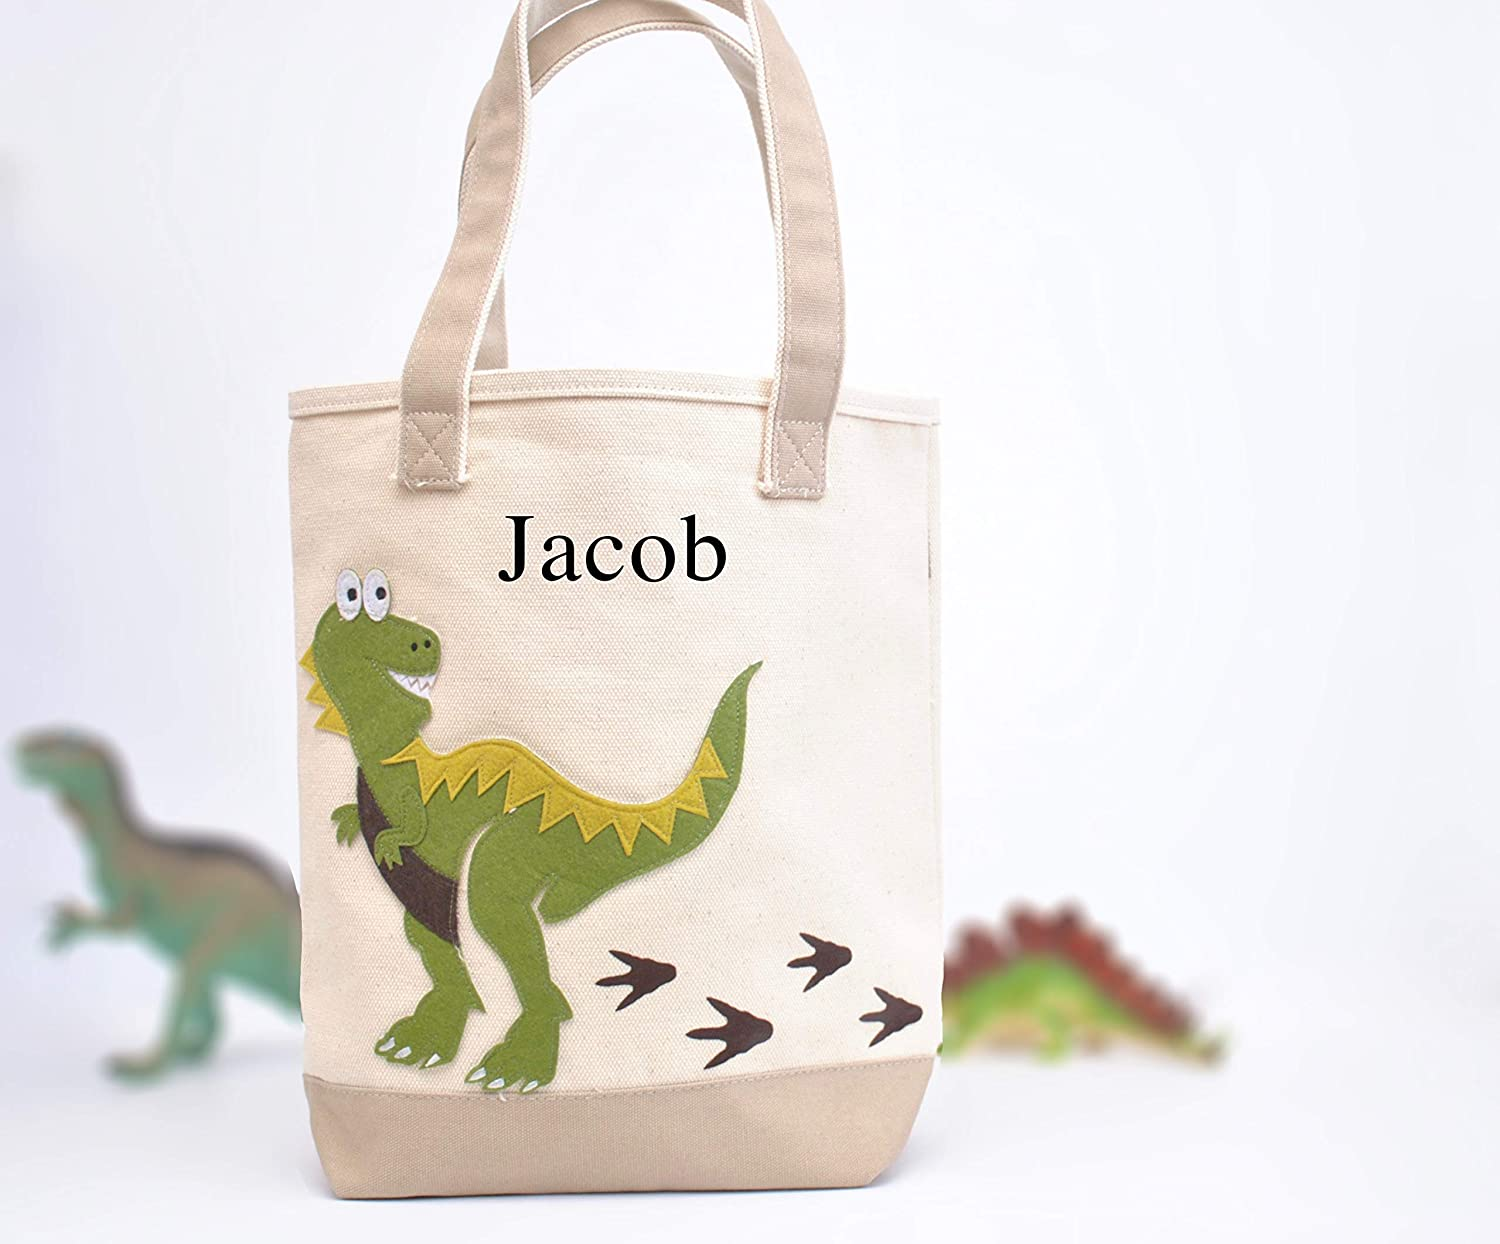 Dinosaur Year-end annual account Sale item Tote Bag Personalized Kids Preschool tote T T-rex